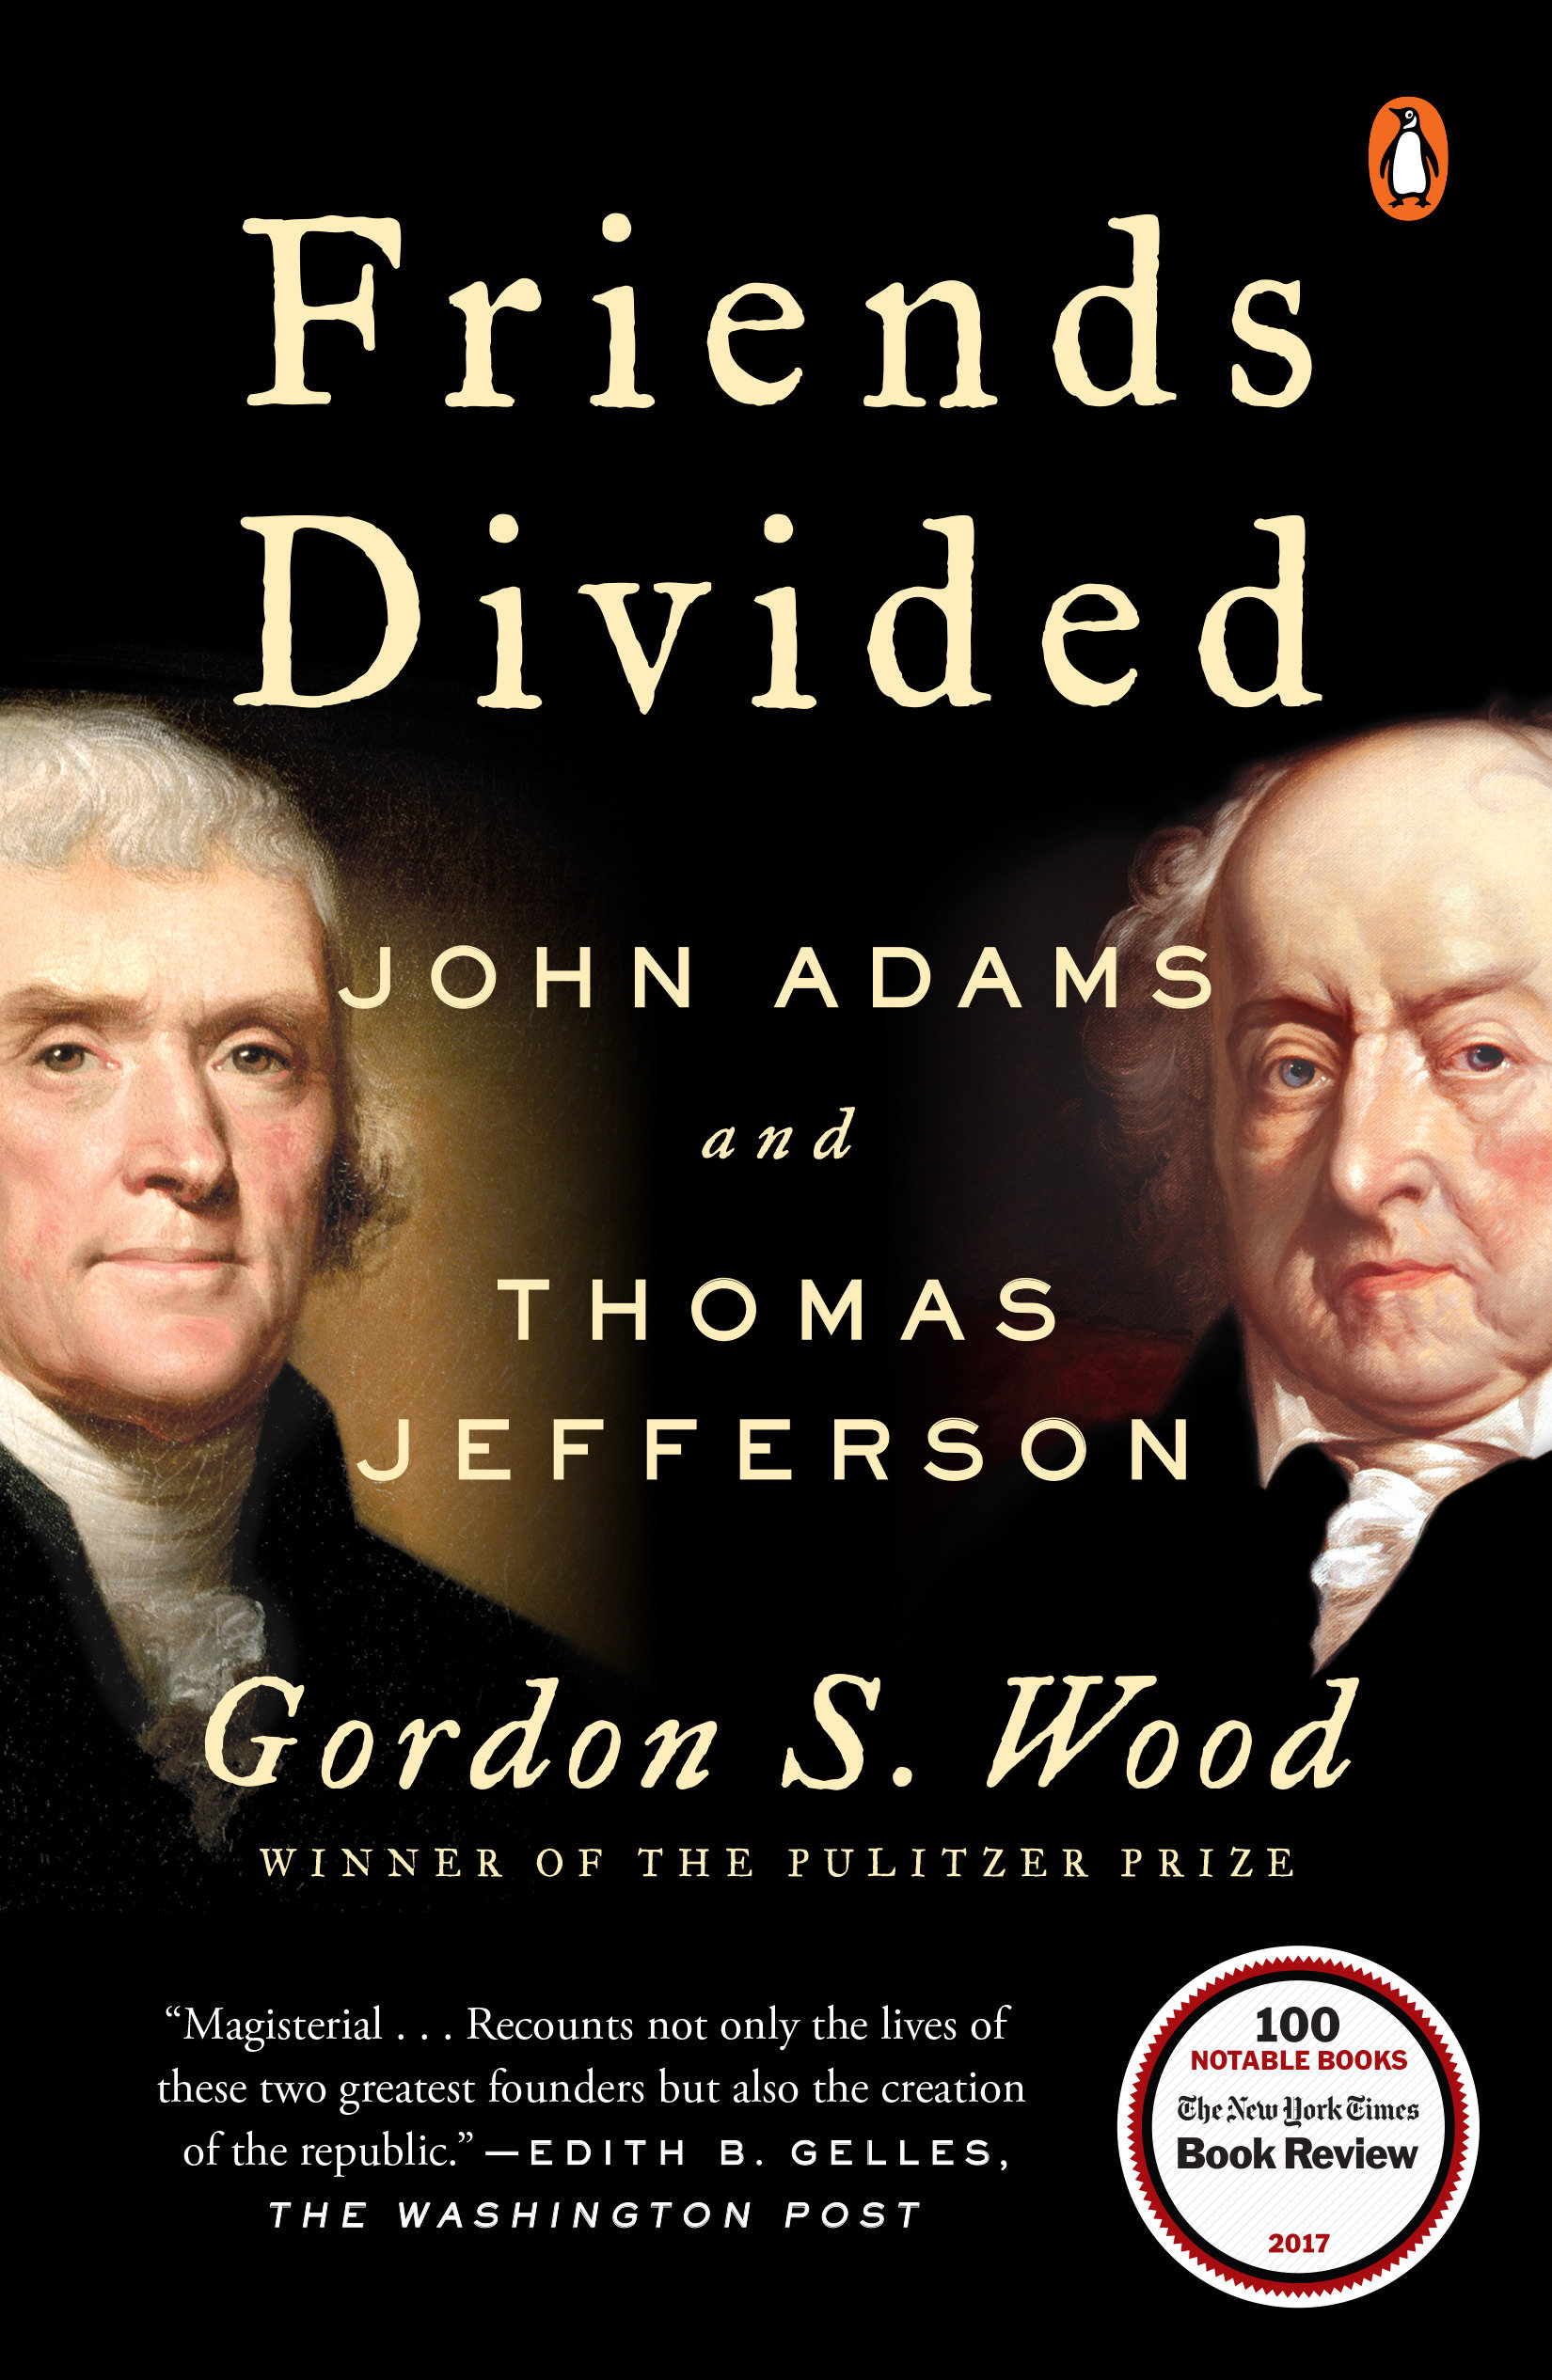 Friends Divided John Adams and Thomas Jefferson